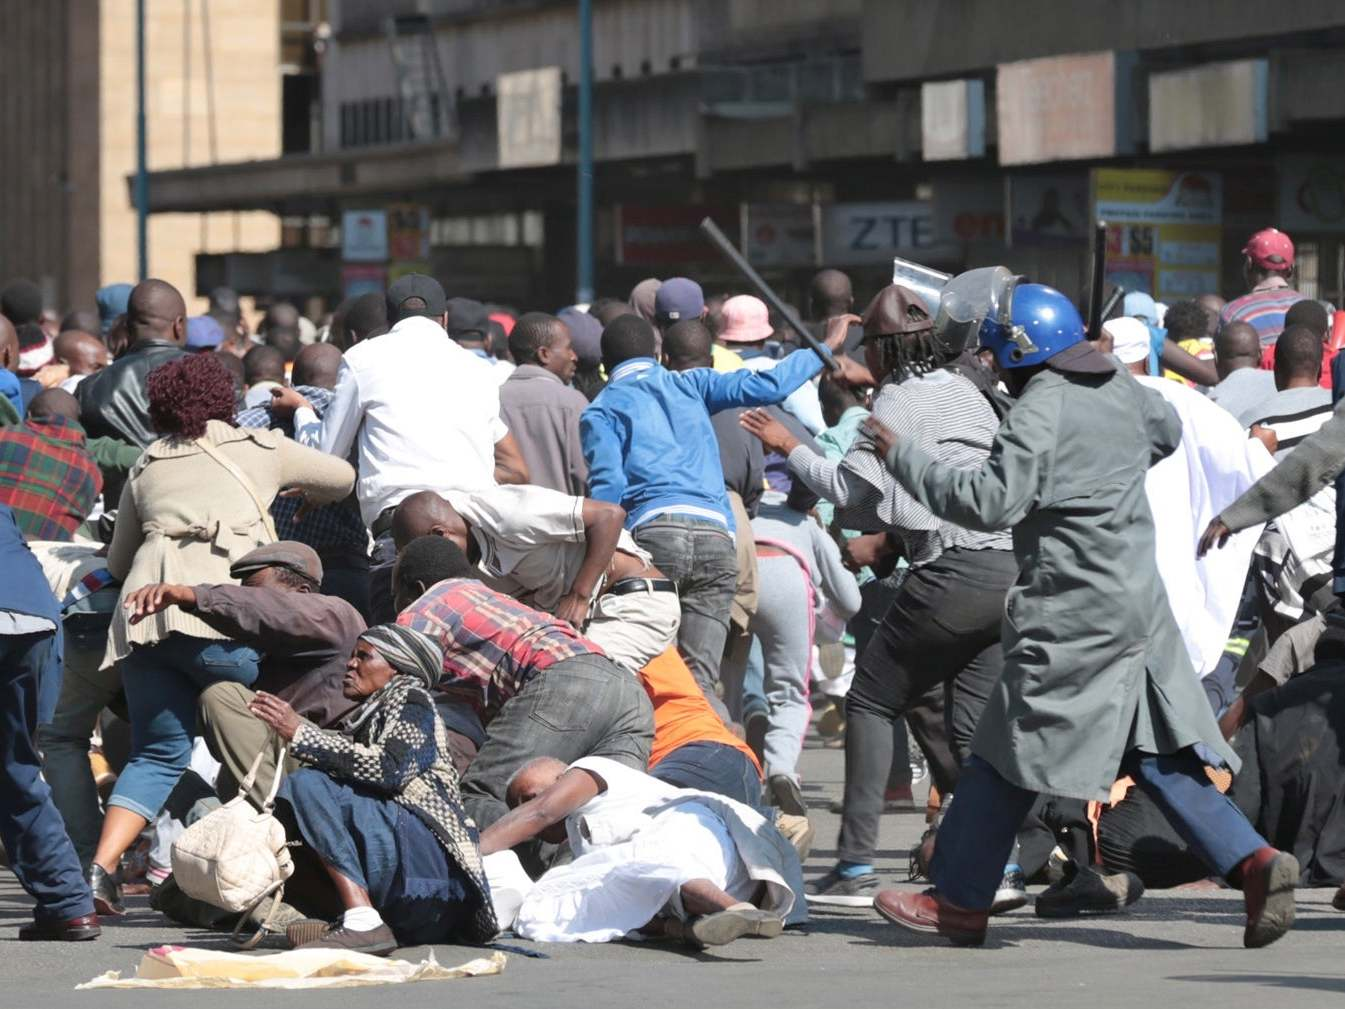 Zimbabwe: Police fire teargas, beat up anti-government protesters demonstrating against economic crisis